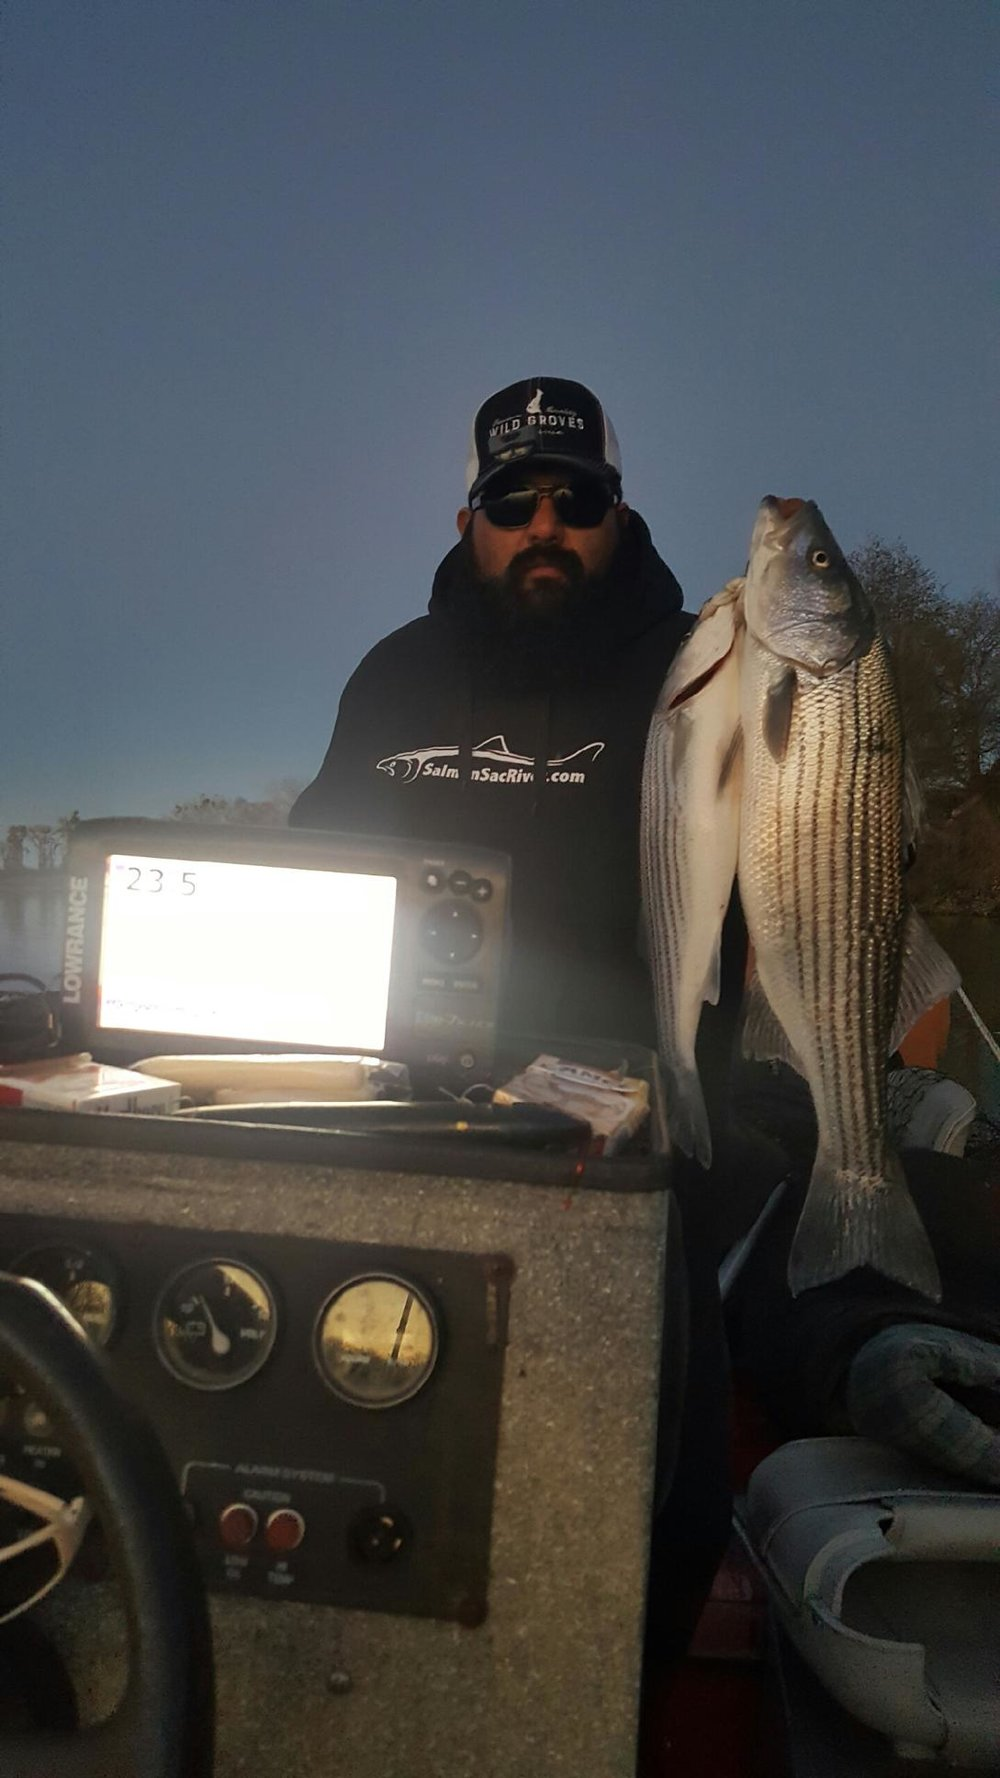 Oscar Nerey, a Northern California olive farmer holds up his limit of striped bass he caught with Sacramento River Striped Bass Fishing Guide Mike Rasmussen of  SalmonSacRiver.com  on December 29, 2016.  Mike's Fishing Guide & Charter Service For Sacramento River Fishing targeting King Salmon, Sockeye Salmon, Striped Bass, Sturgeon, Shad And Trout the best Sacramento River Fishing guide and Sacramento River Charter on Sac River